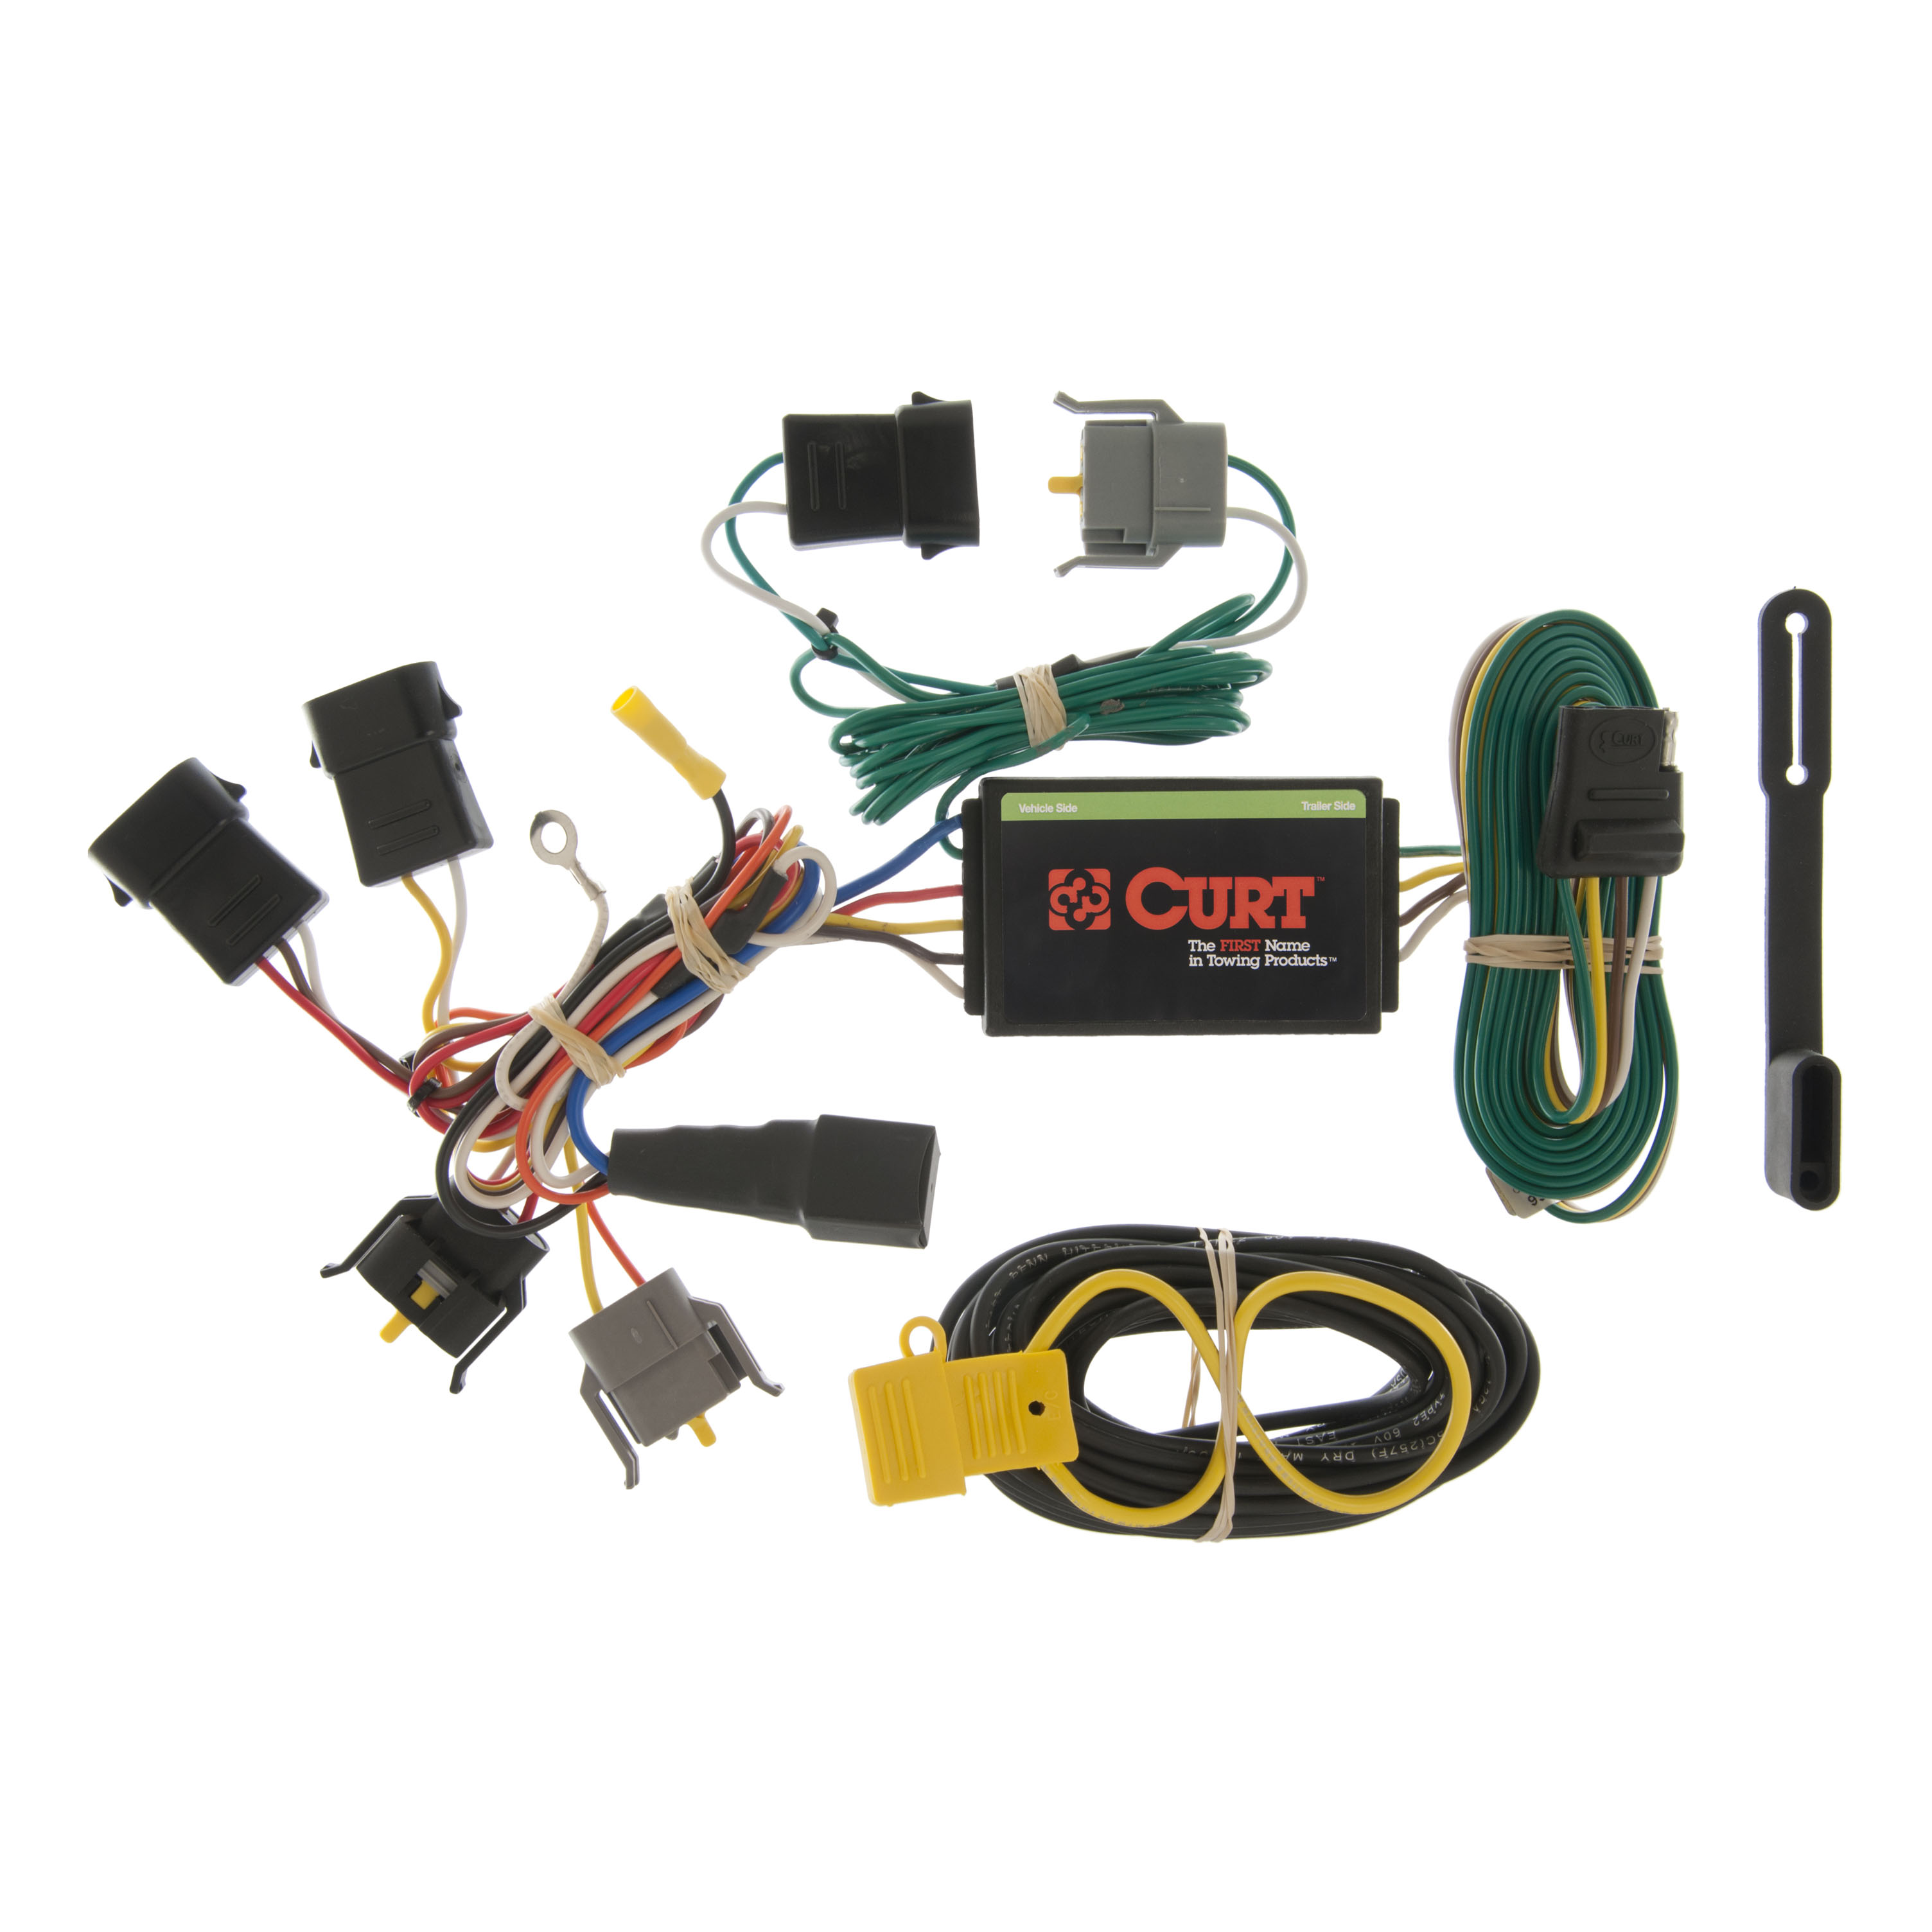 CURT Custom Vehicle-to-Trailer Wiring Harness 55366 for 1999-2003 Ford  Windstar